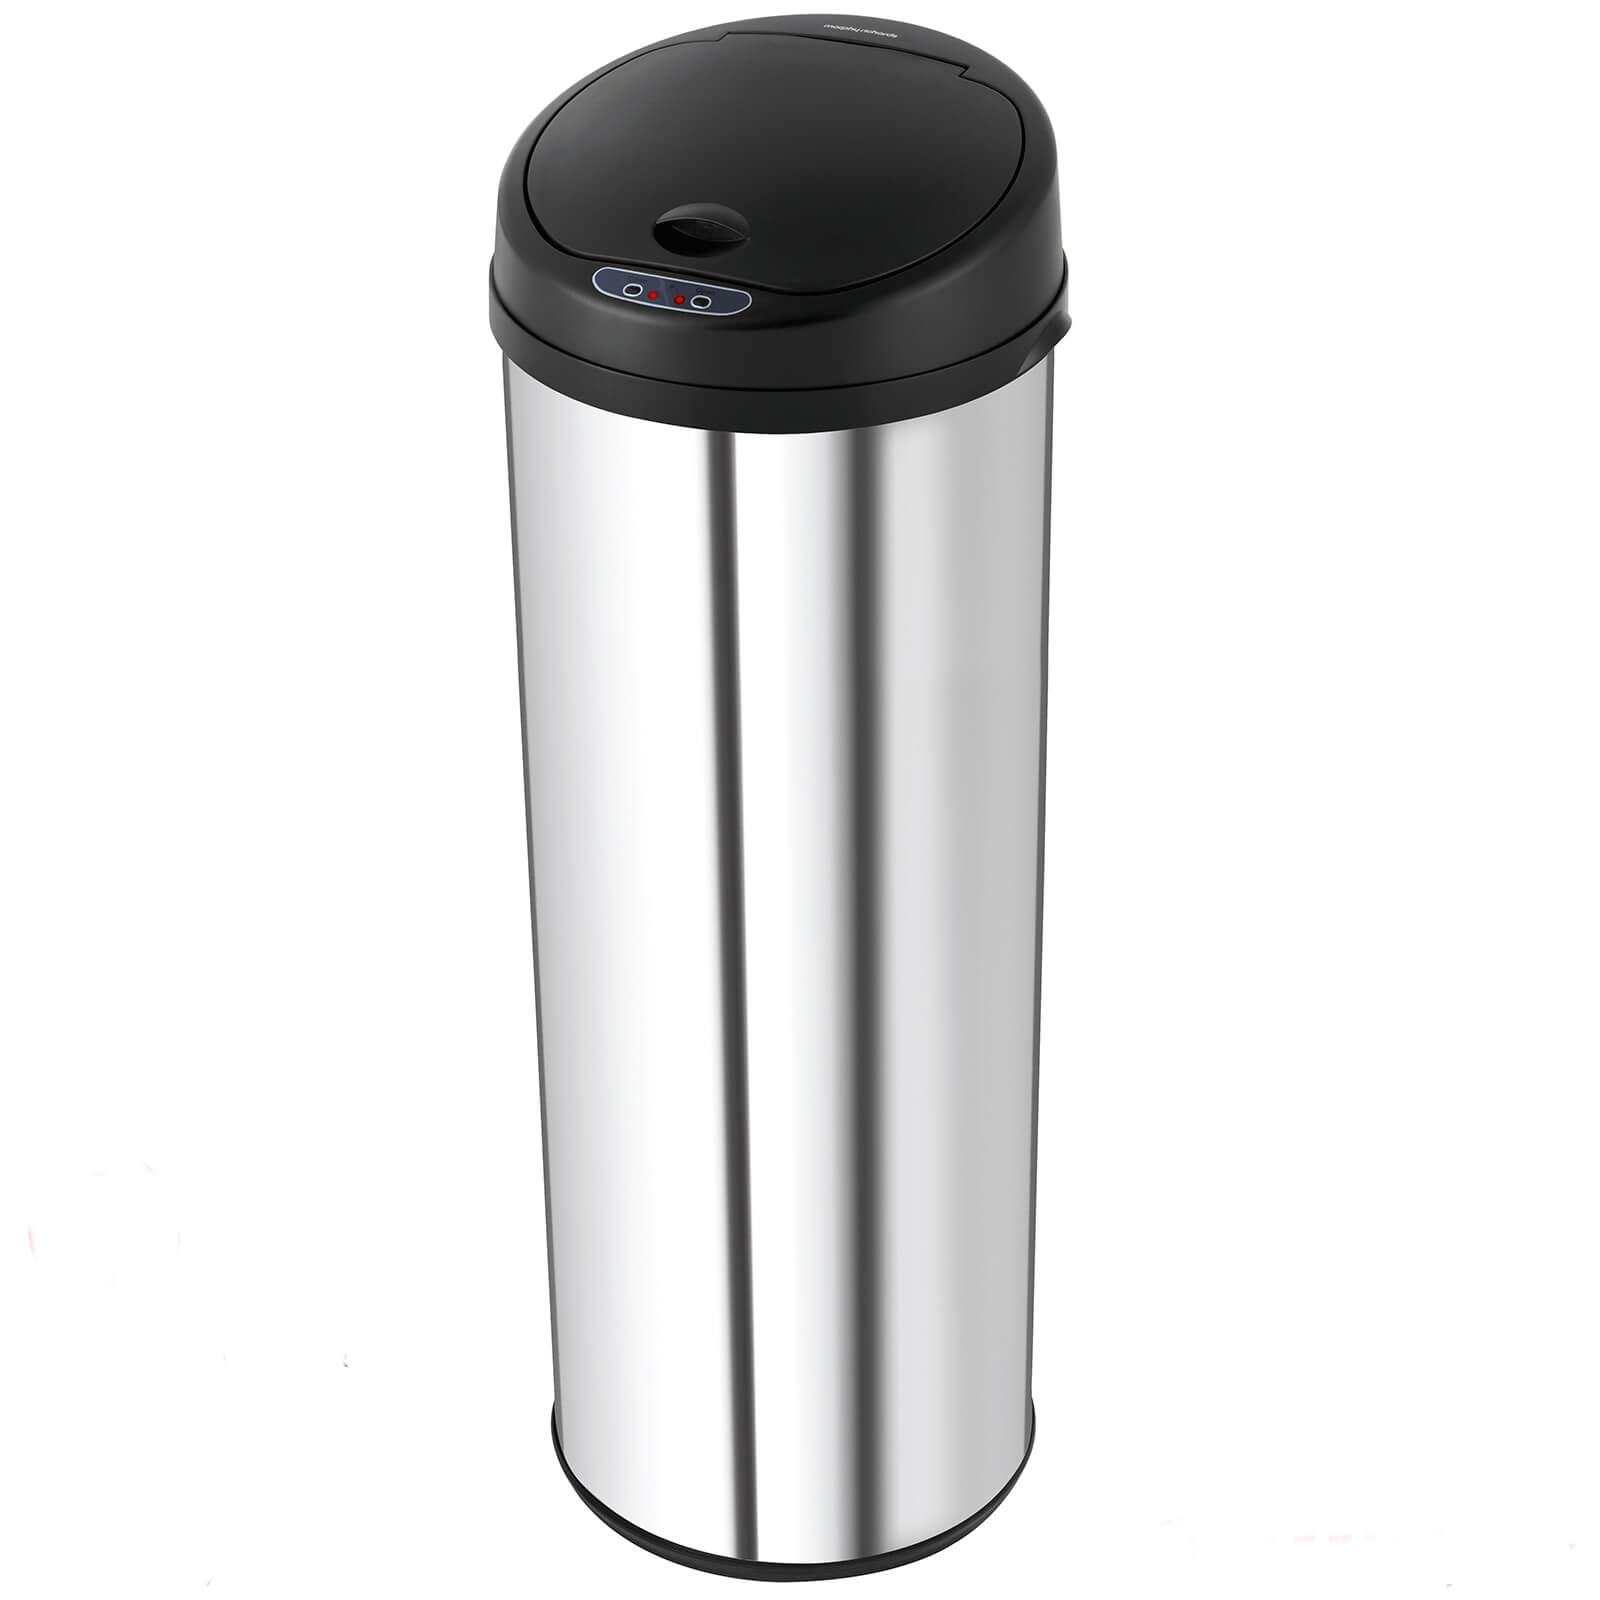 Morphy Richards 971002 50L Round Sensor Bin - Black